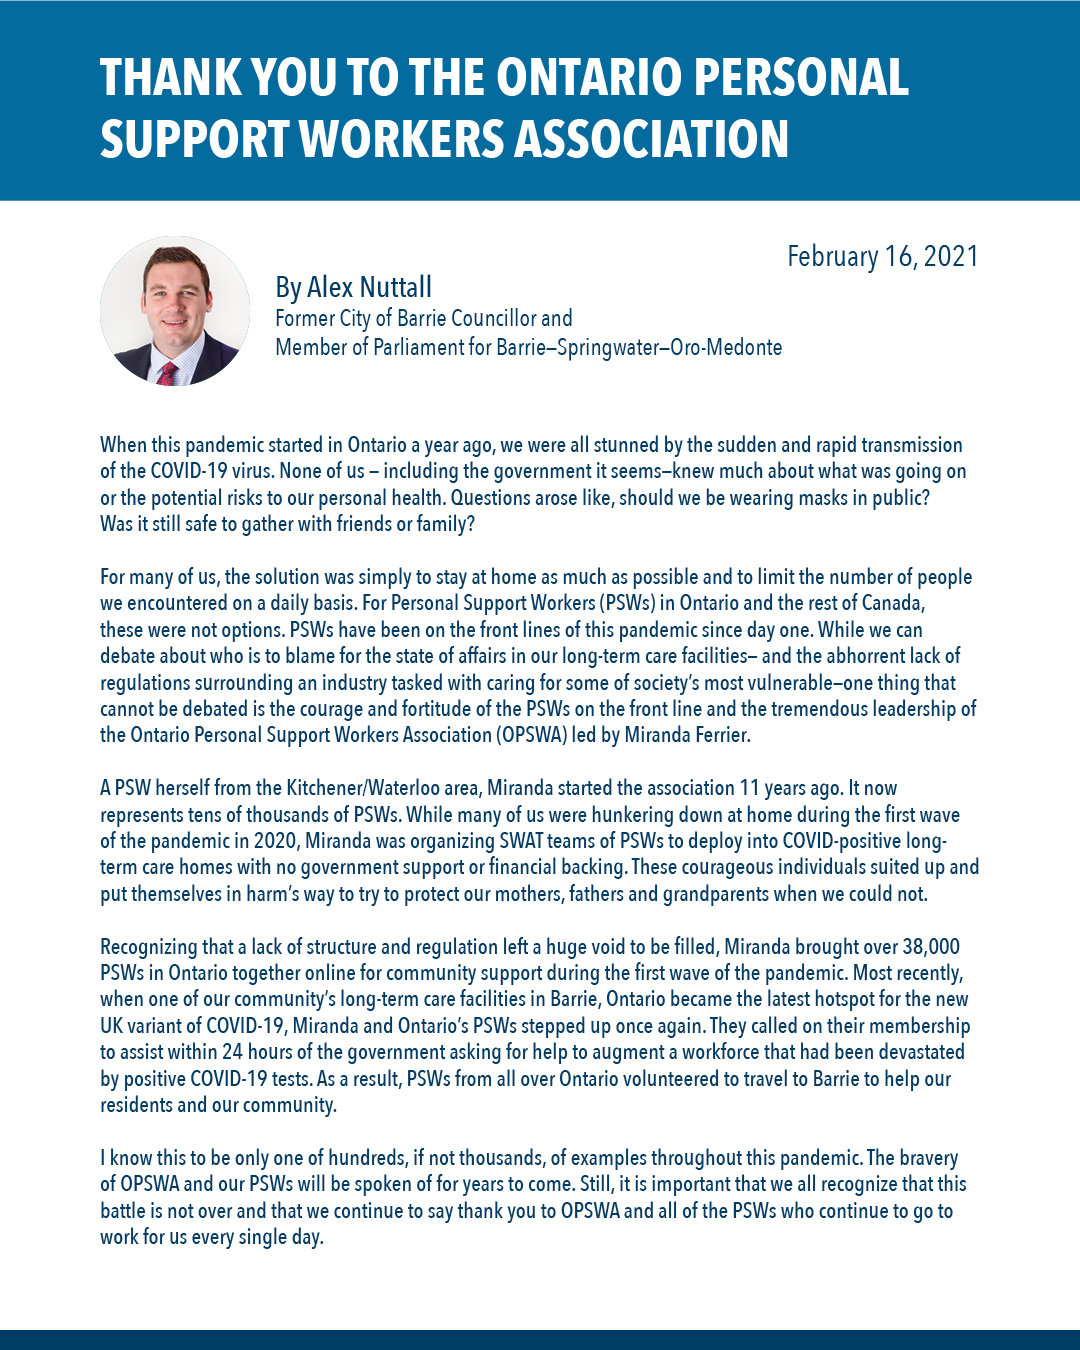 Open Letter from Barrie-Springwater-Oro-Medonte MPP: Thank You To The Ontario Personal Support Workers Association